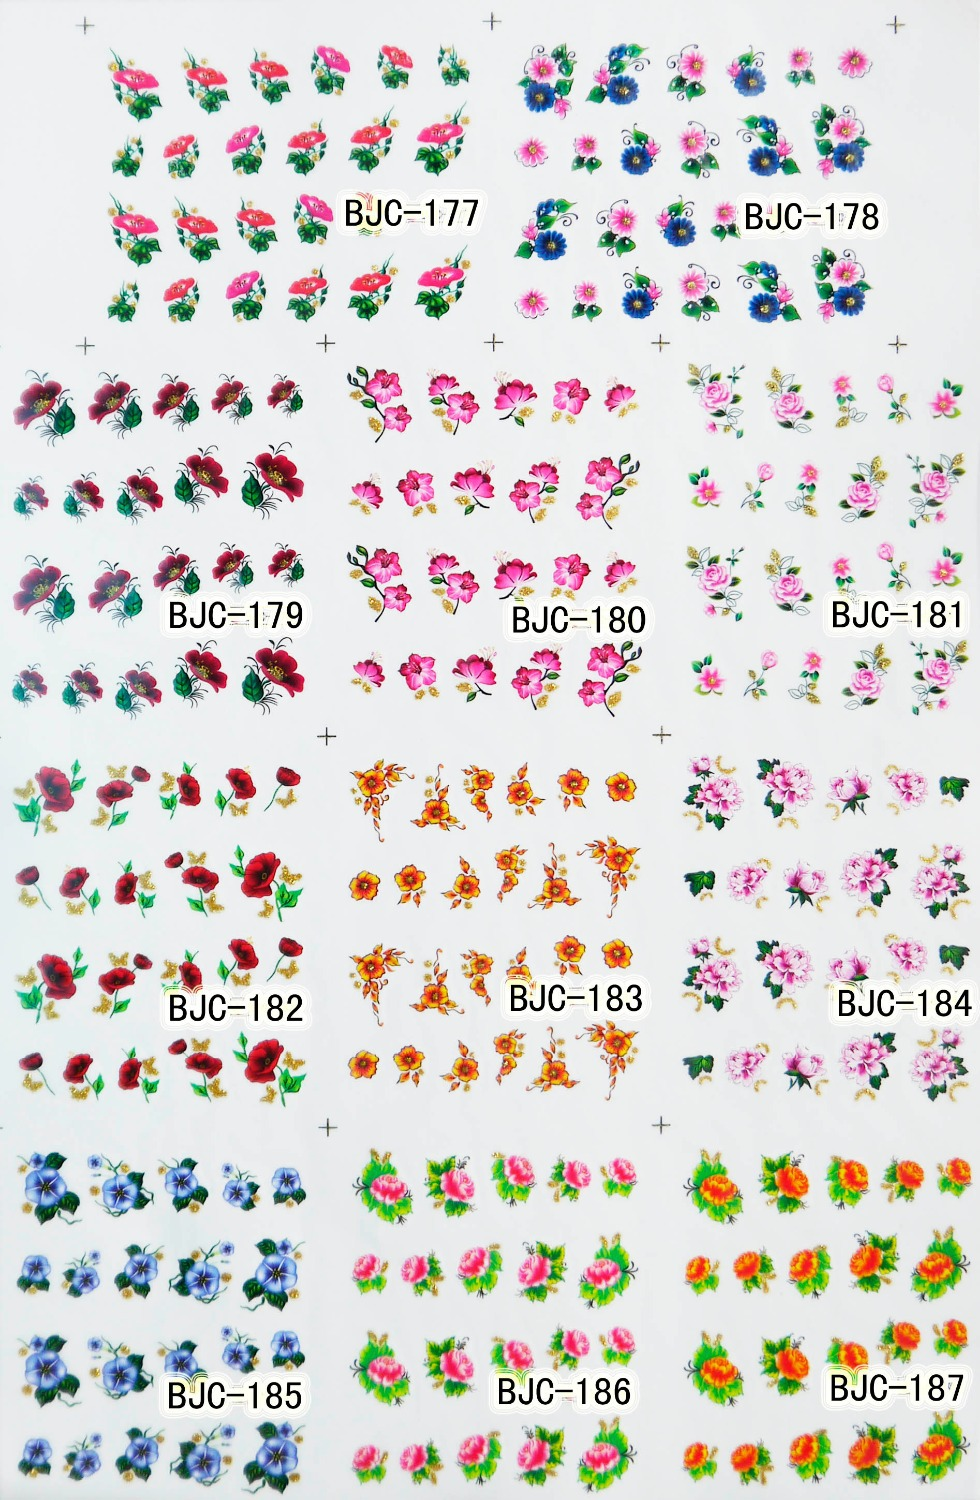 HOTSALE LARGE 1 SET(11 DESIGNS IN 1) BJC177-198 Water decal Nail Sticker Flower design nail sticker For nail accessories(China (Mainland))